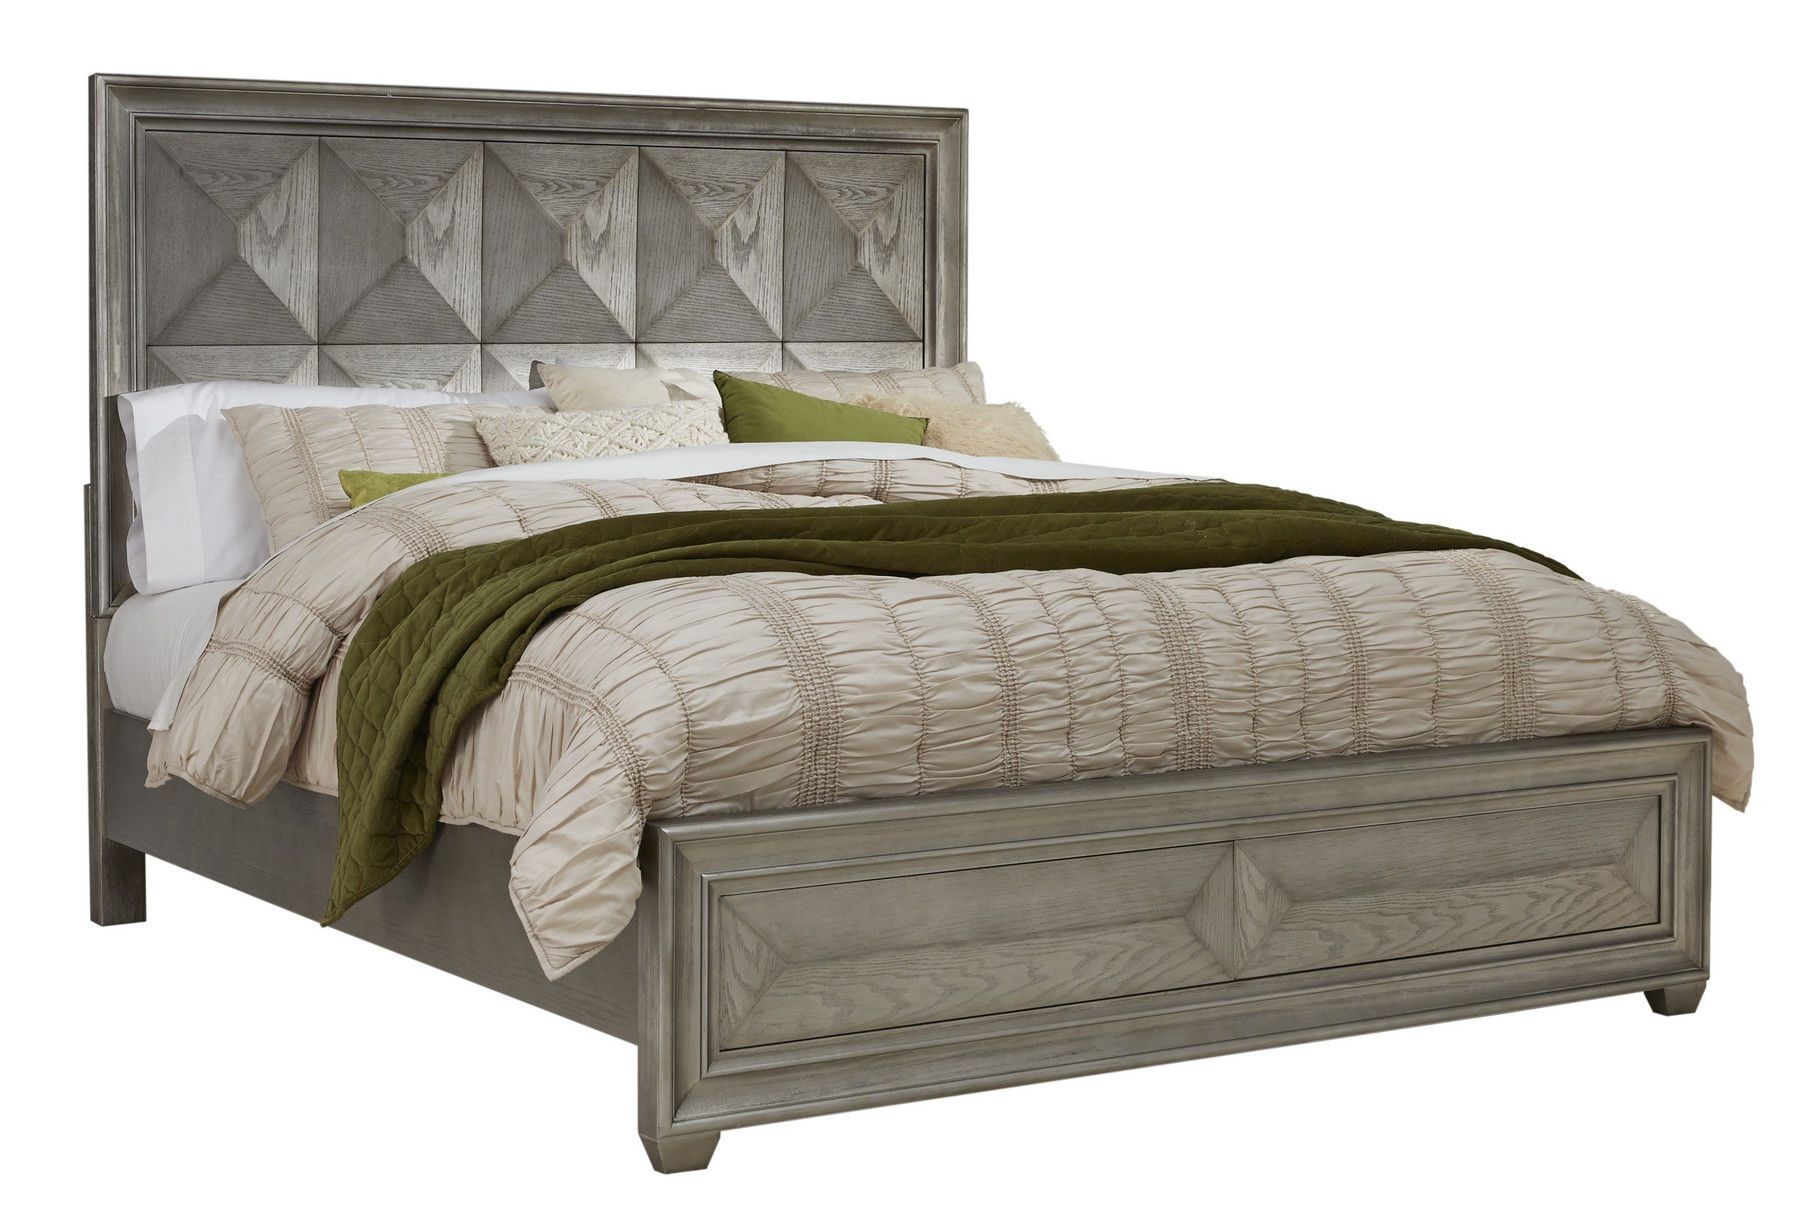 Soho King Size Bed In 2020 Queen Size Bedding Bed Panel Bed